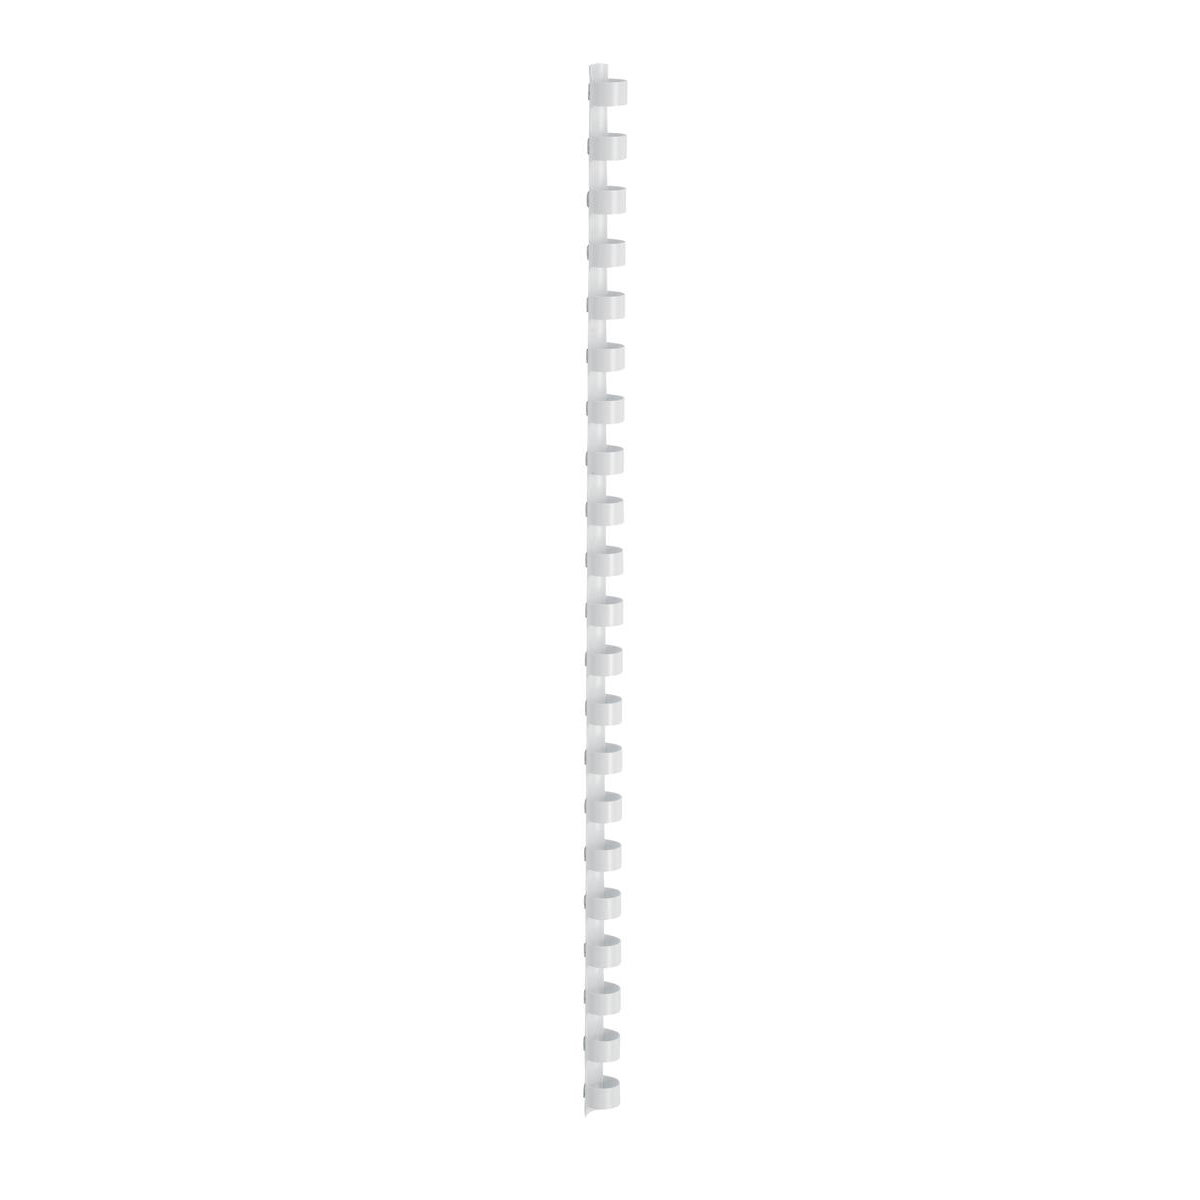 Binding Combs 5 Star Office Binding Combs Plastic 21 Ring 65 Sheets A4 10mm White Pack 100